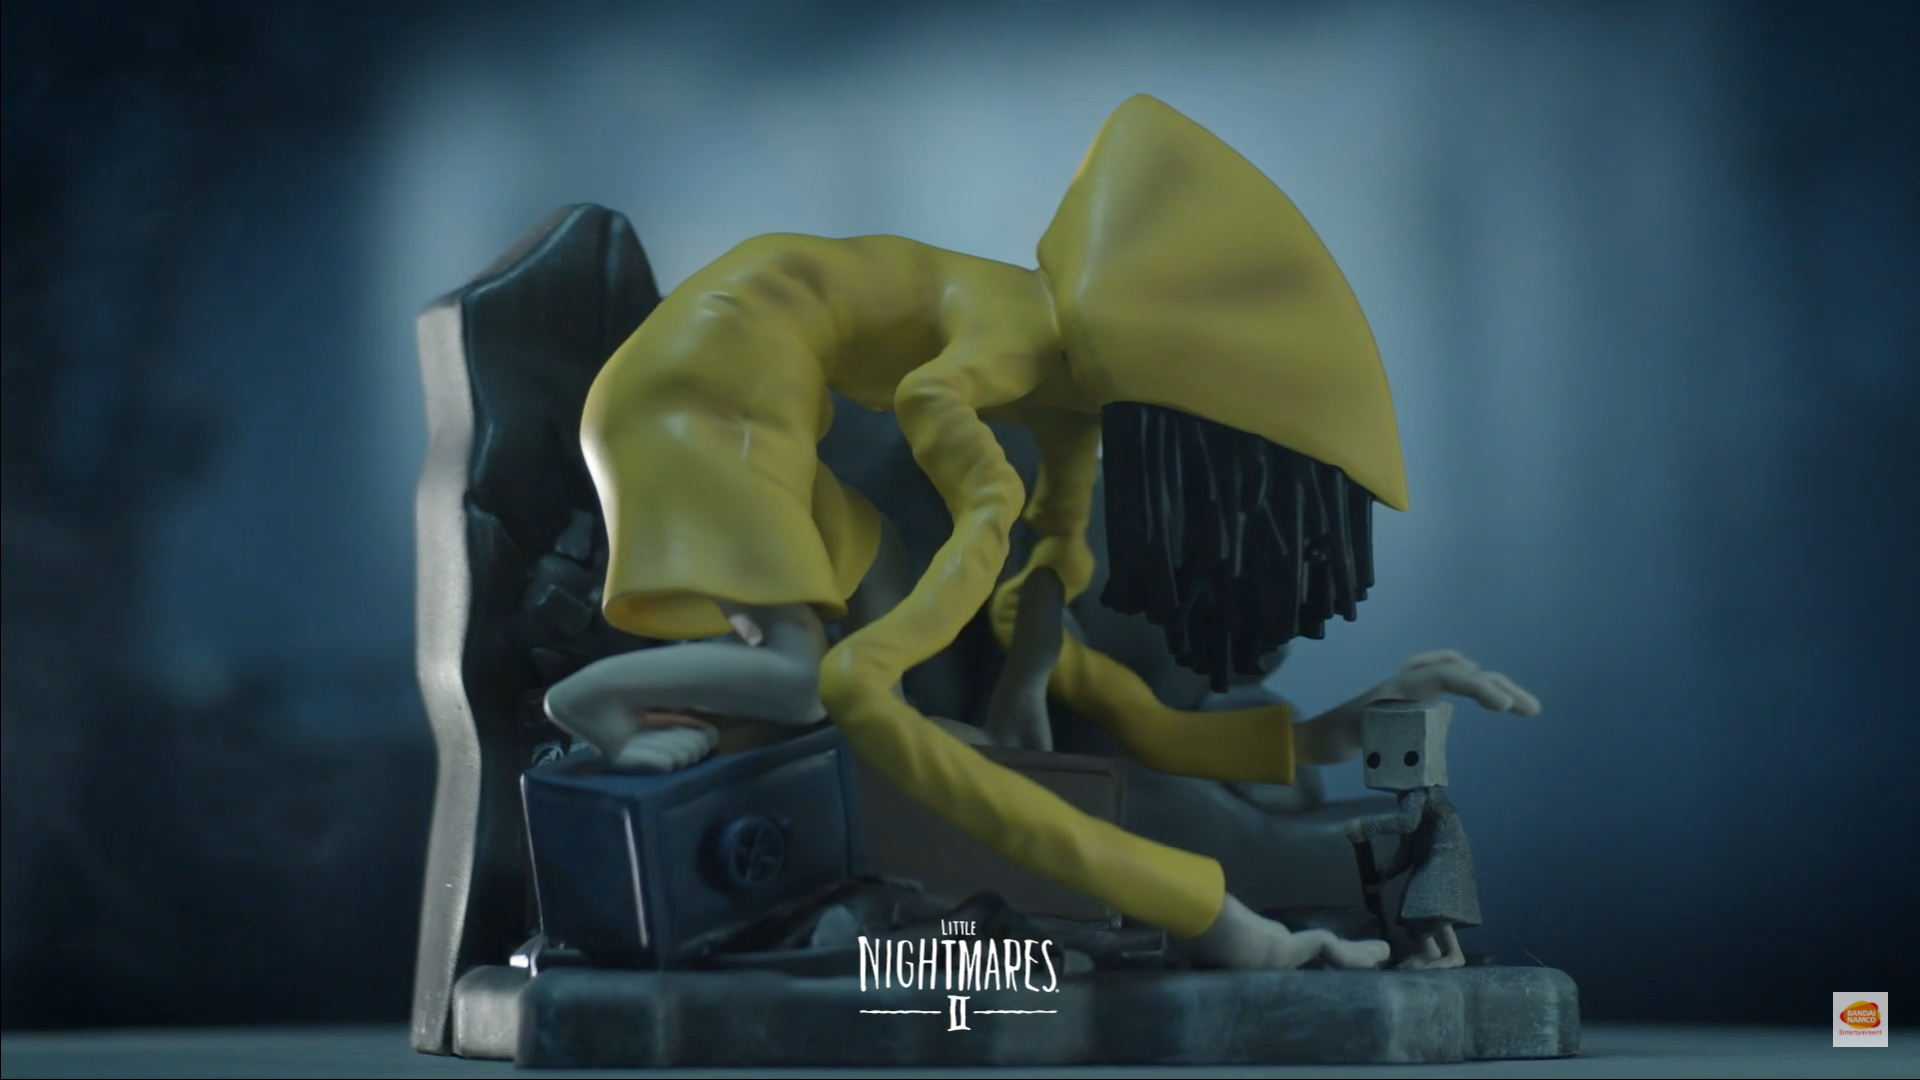 Pre-orders for Little Nightmares II are available now! - BunnyGaming.com